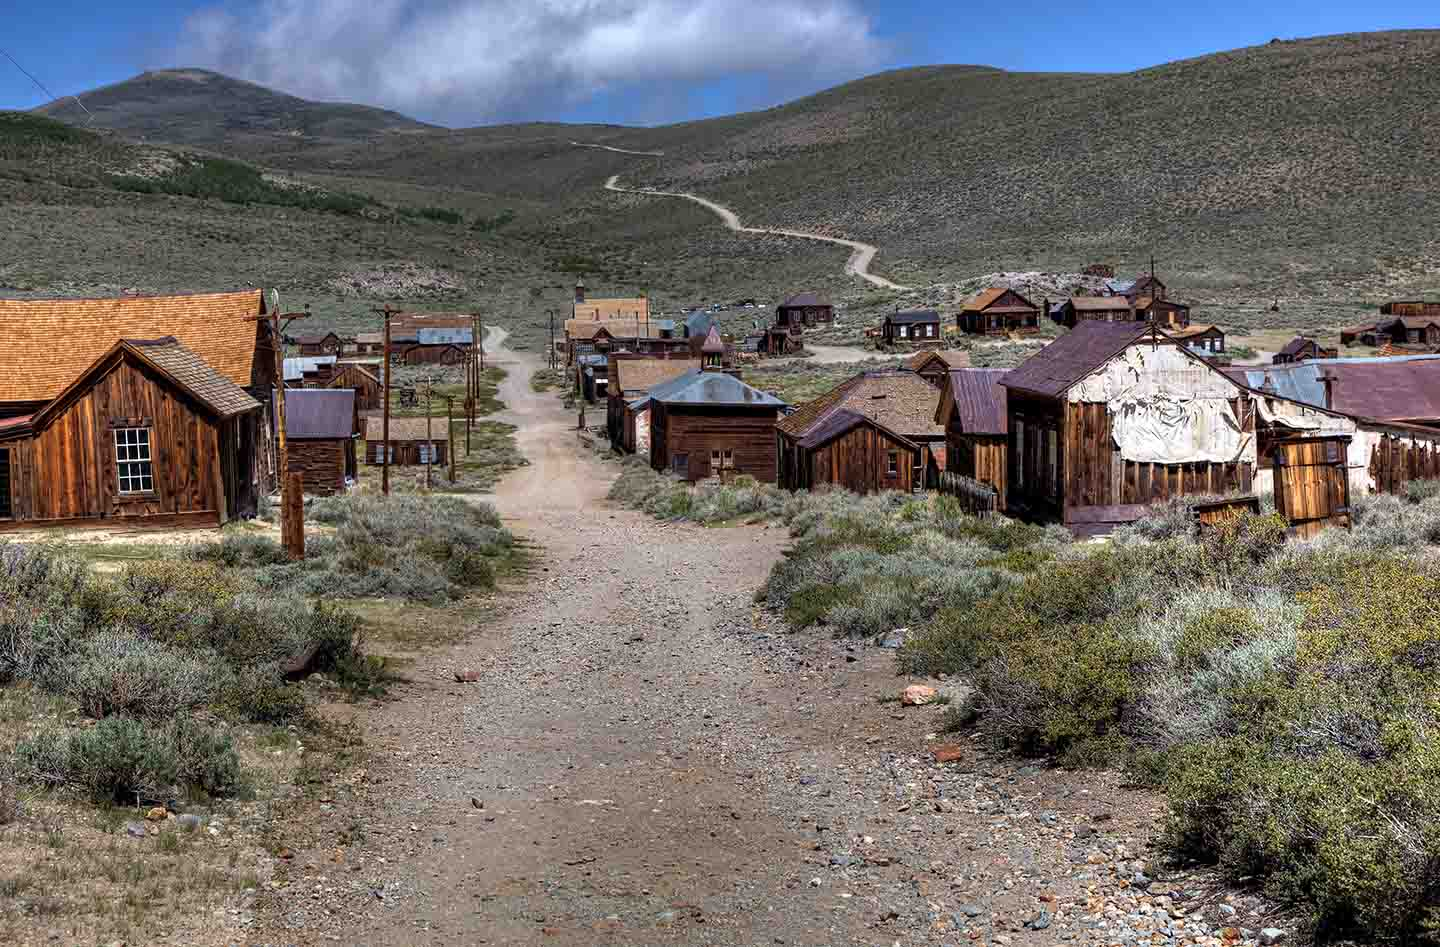 Abandoned buildings at Bodie State Historic Park